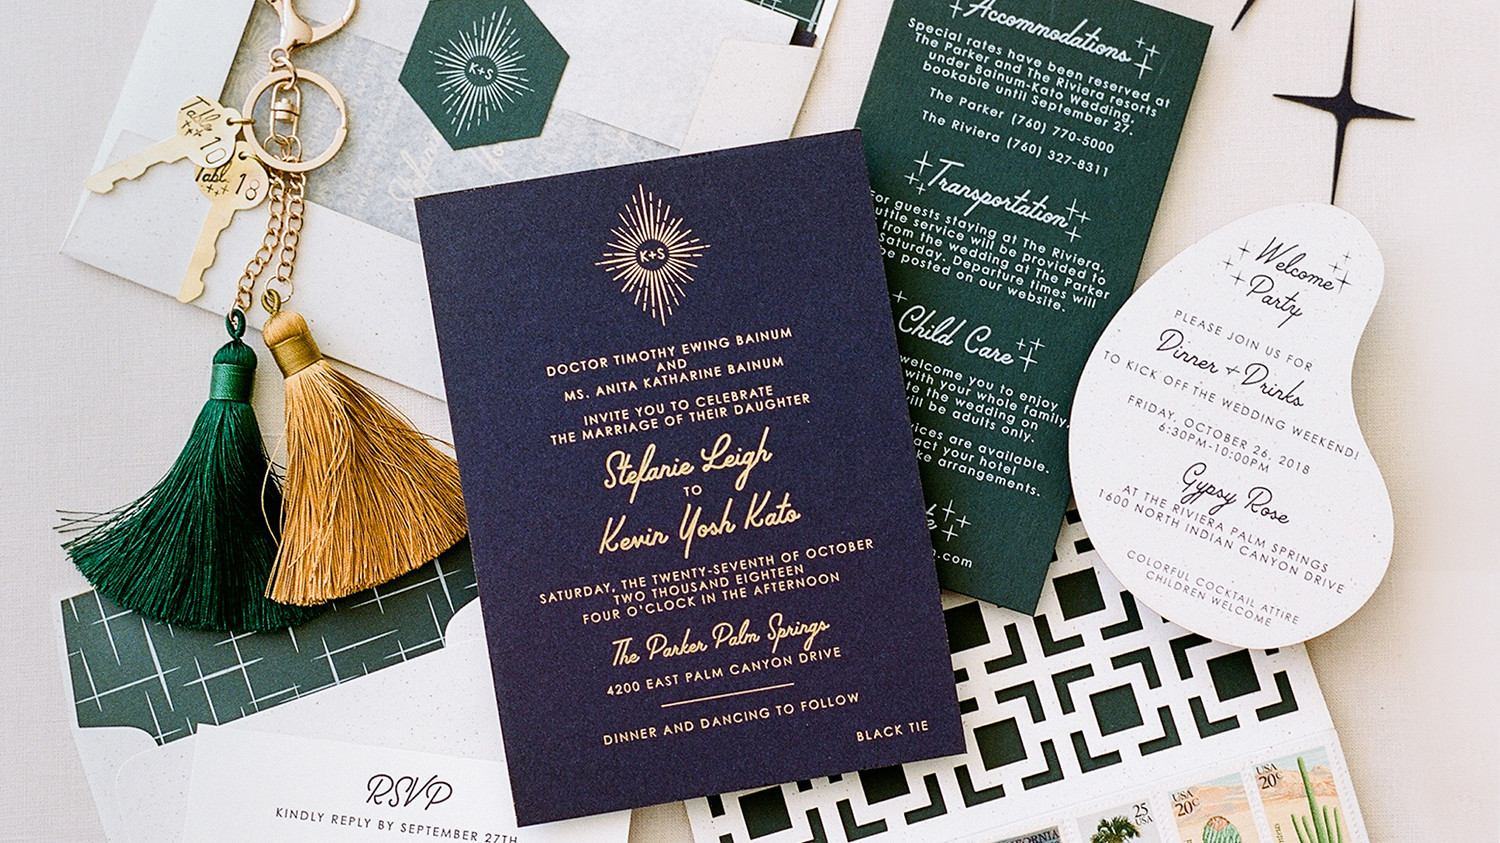 Martha Stewart Wedding Invitation: Is It Worth The Extra Cost To Have Our Stationer Assemble Our Wedding Invitations?